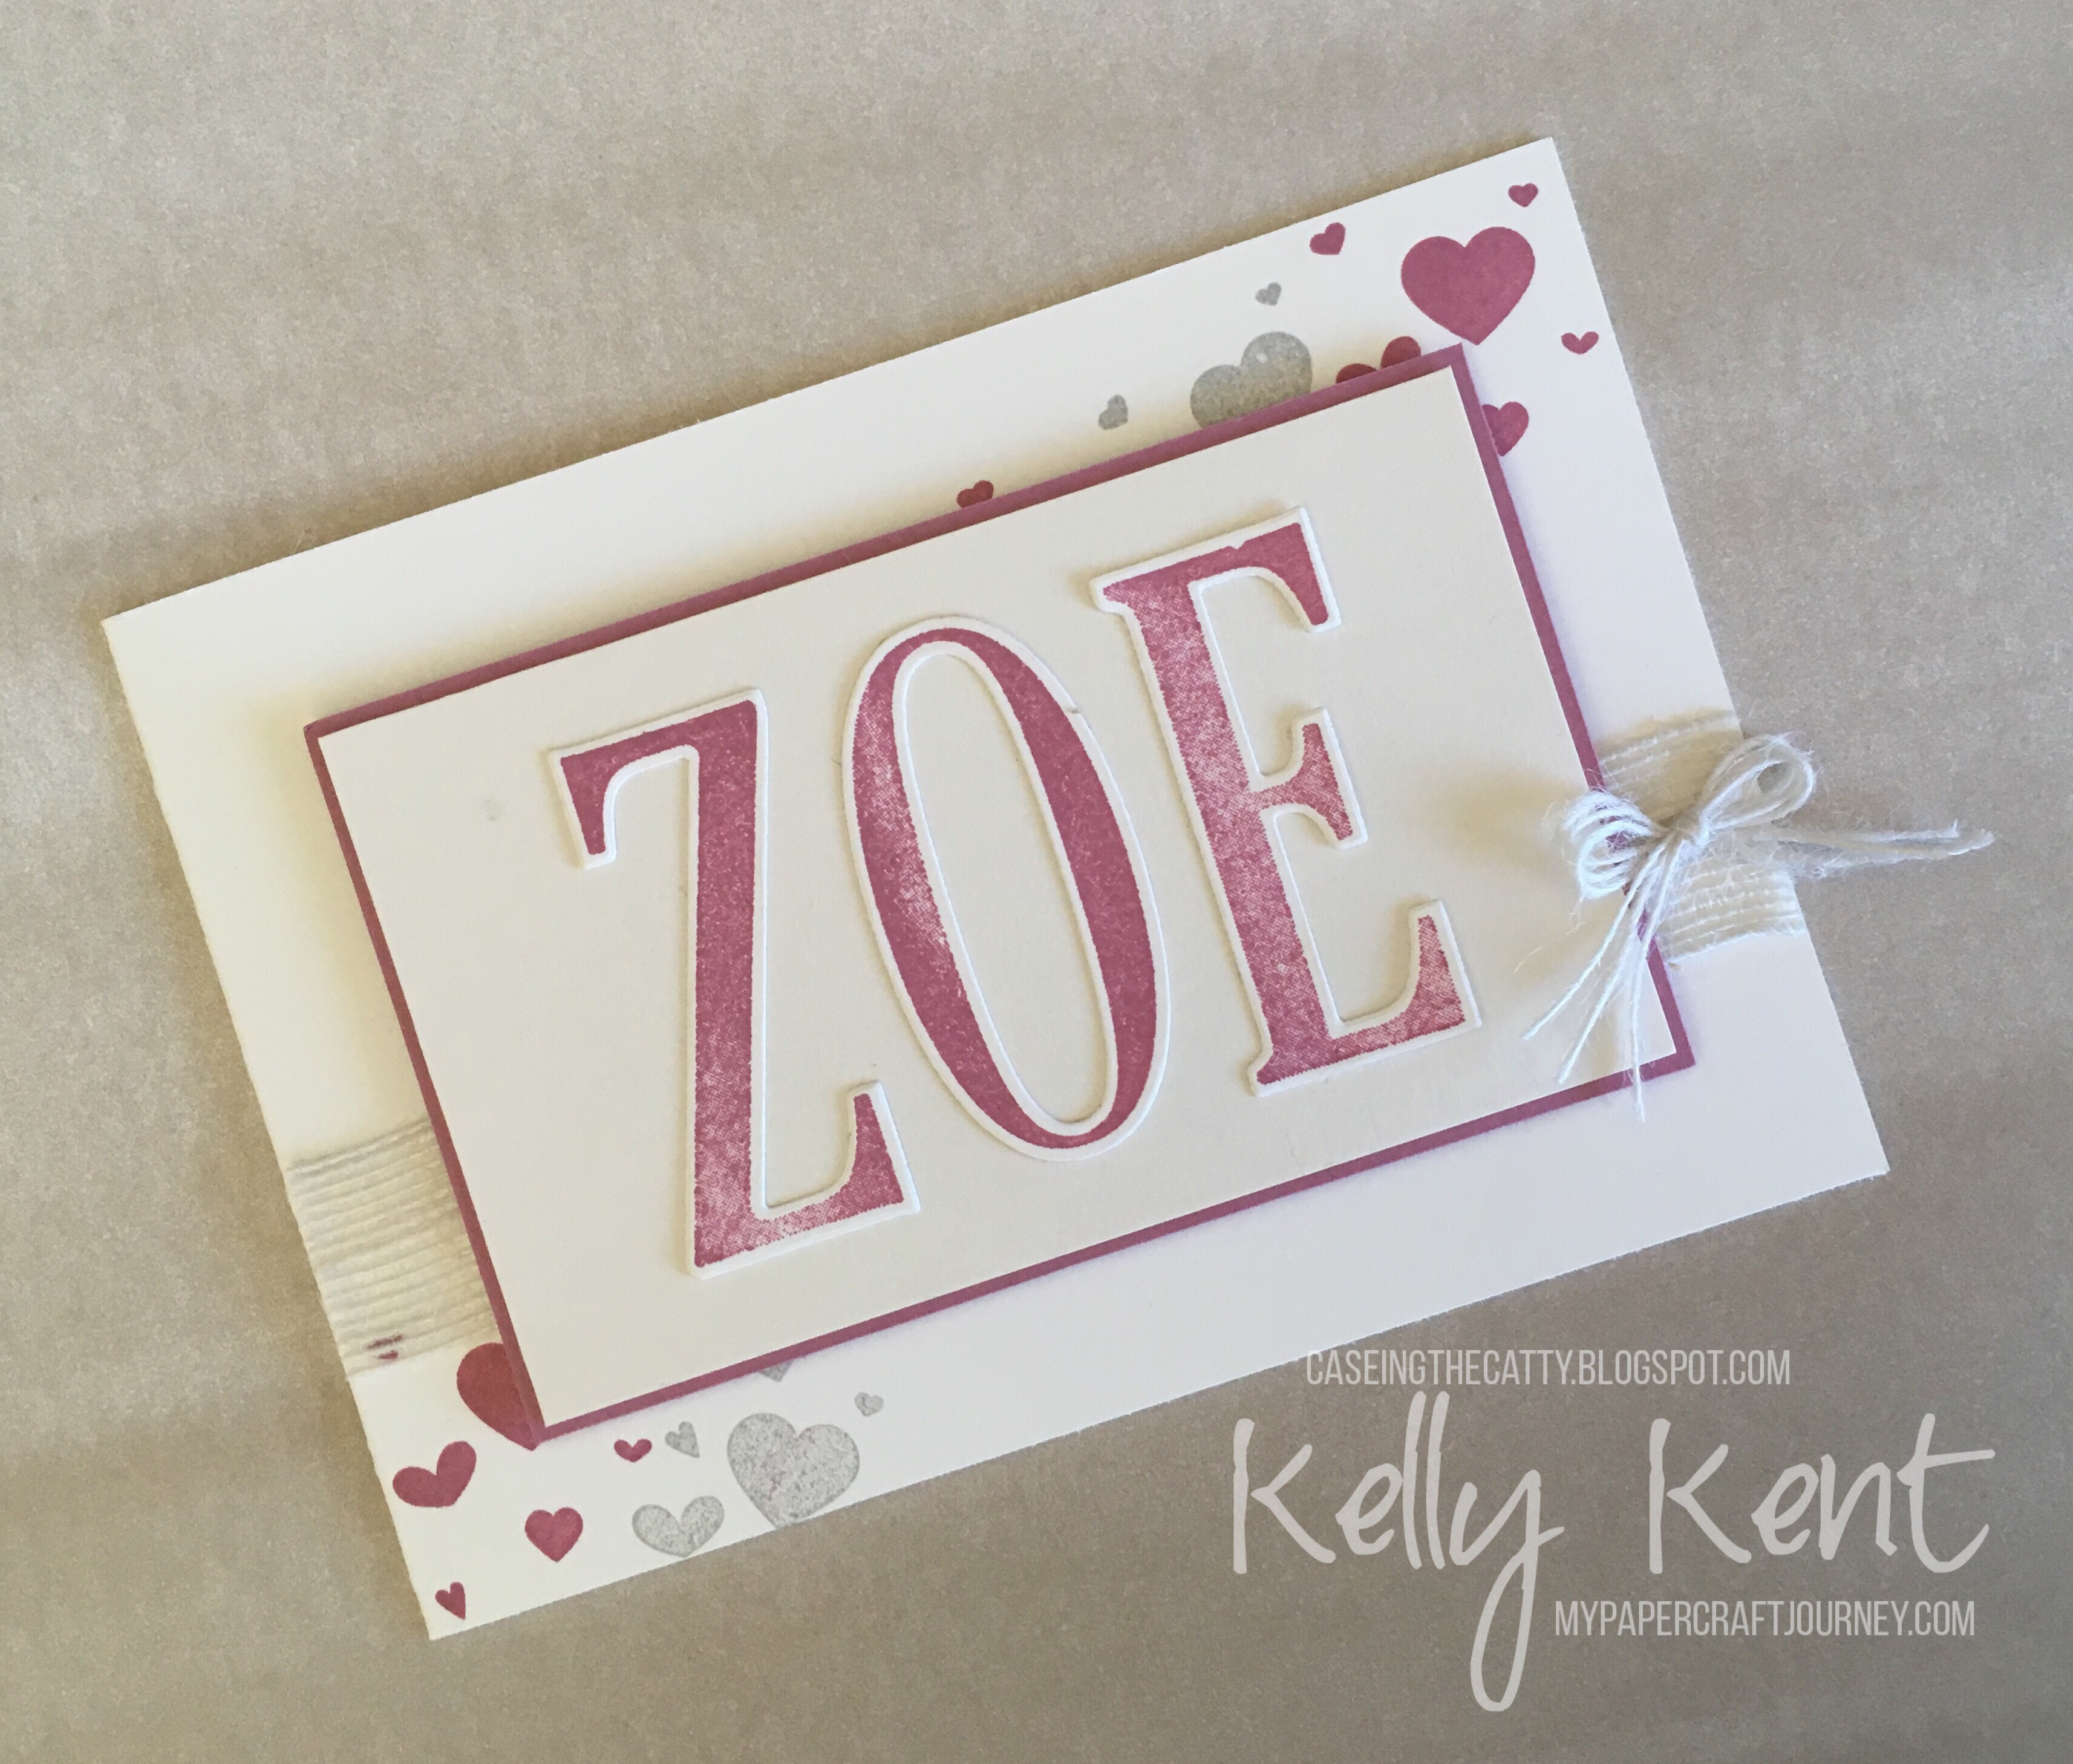 CASEing the Catty #109. Large Letters & Letters for You baby card. Kelly Kent - mypapercraftjourney.com.